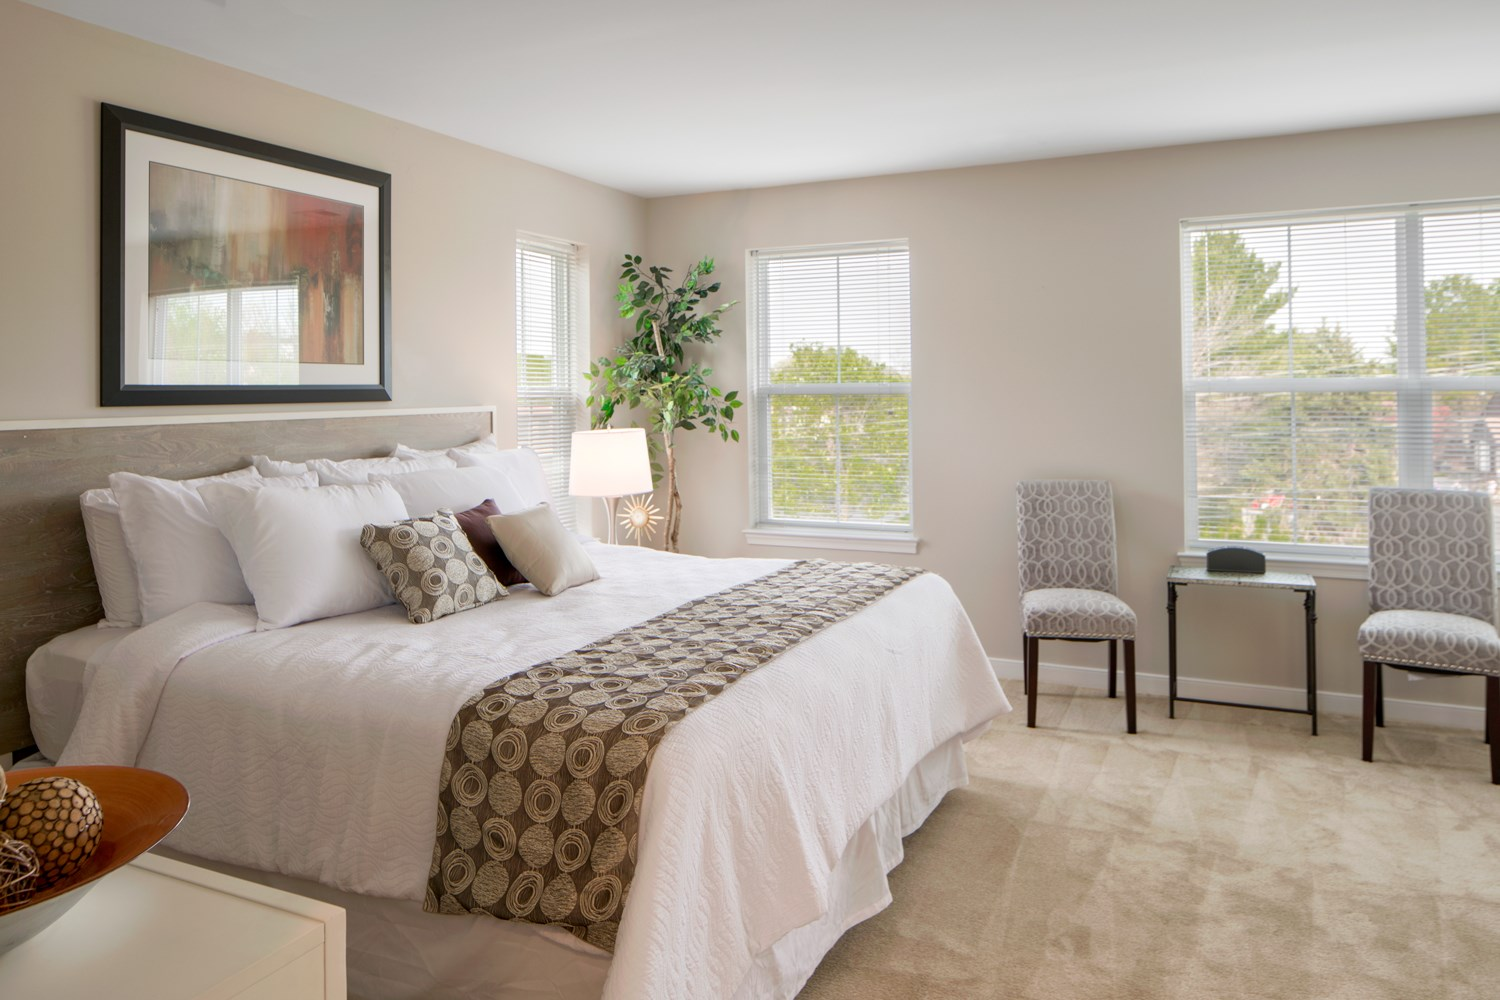 Live in cozy bedrooms at Townes at Pine Orchard, Ellicott City, MD